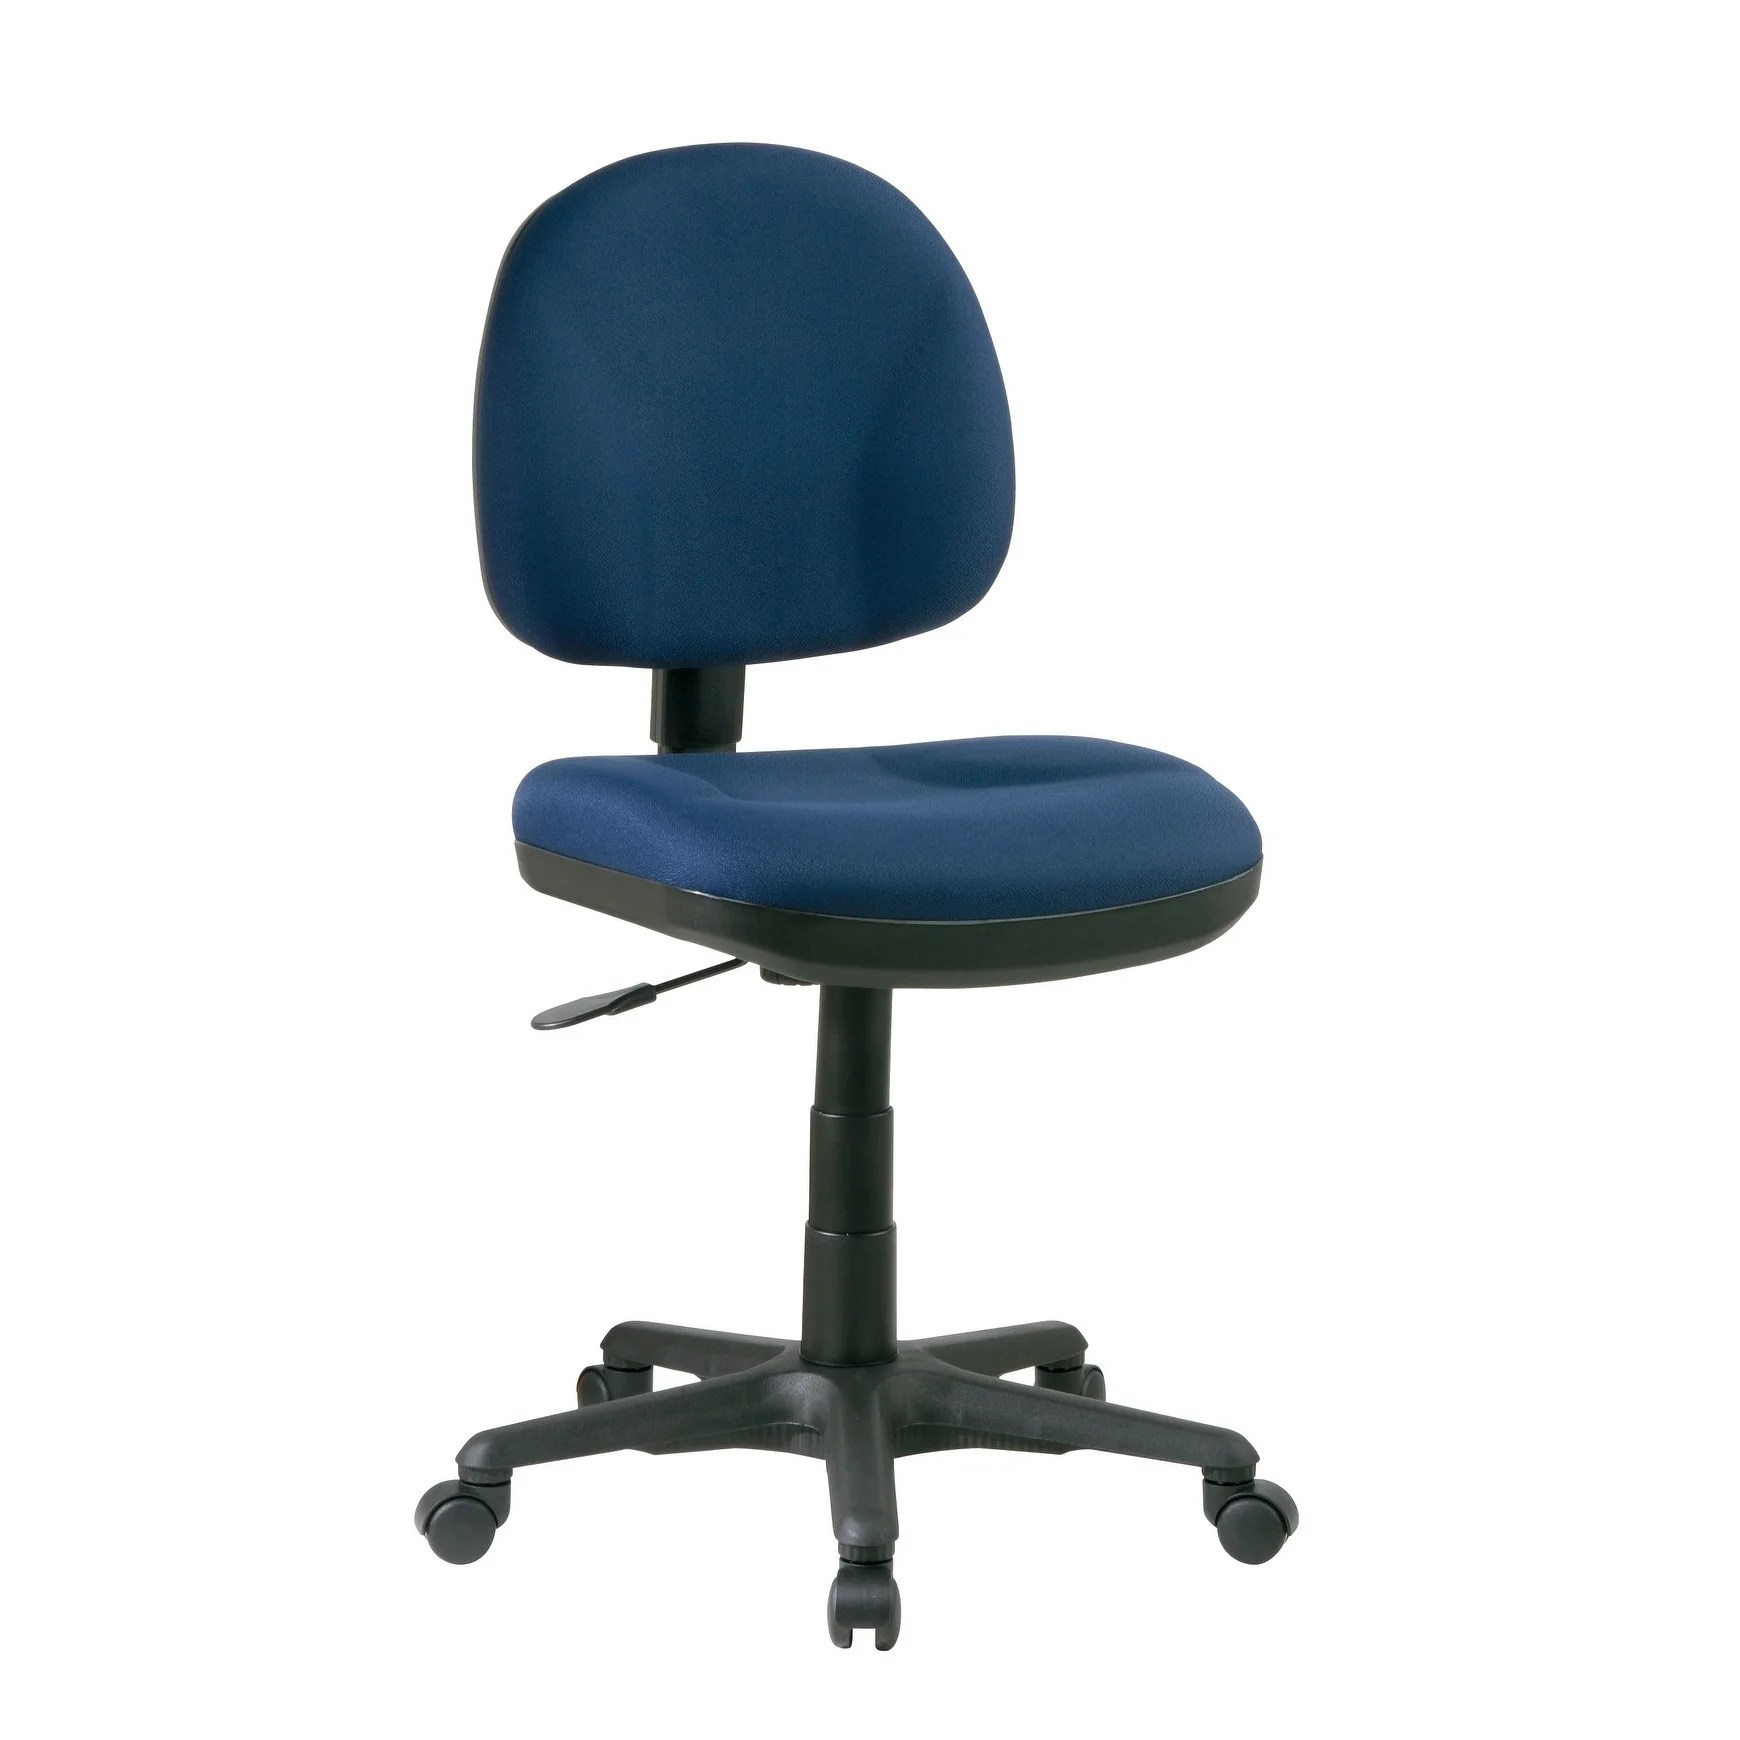 task chair without arms salon mat shop work smart sculptured free shipping today overstock com 24239552